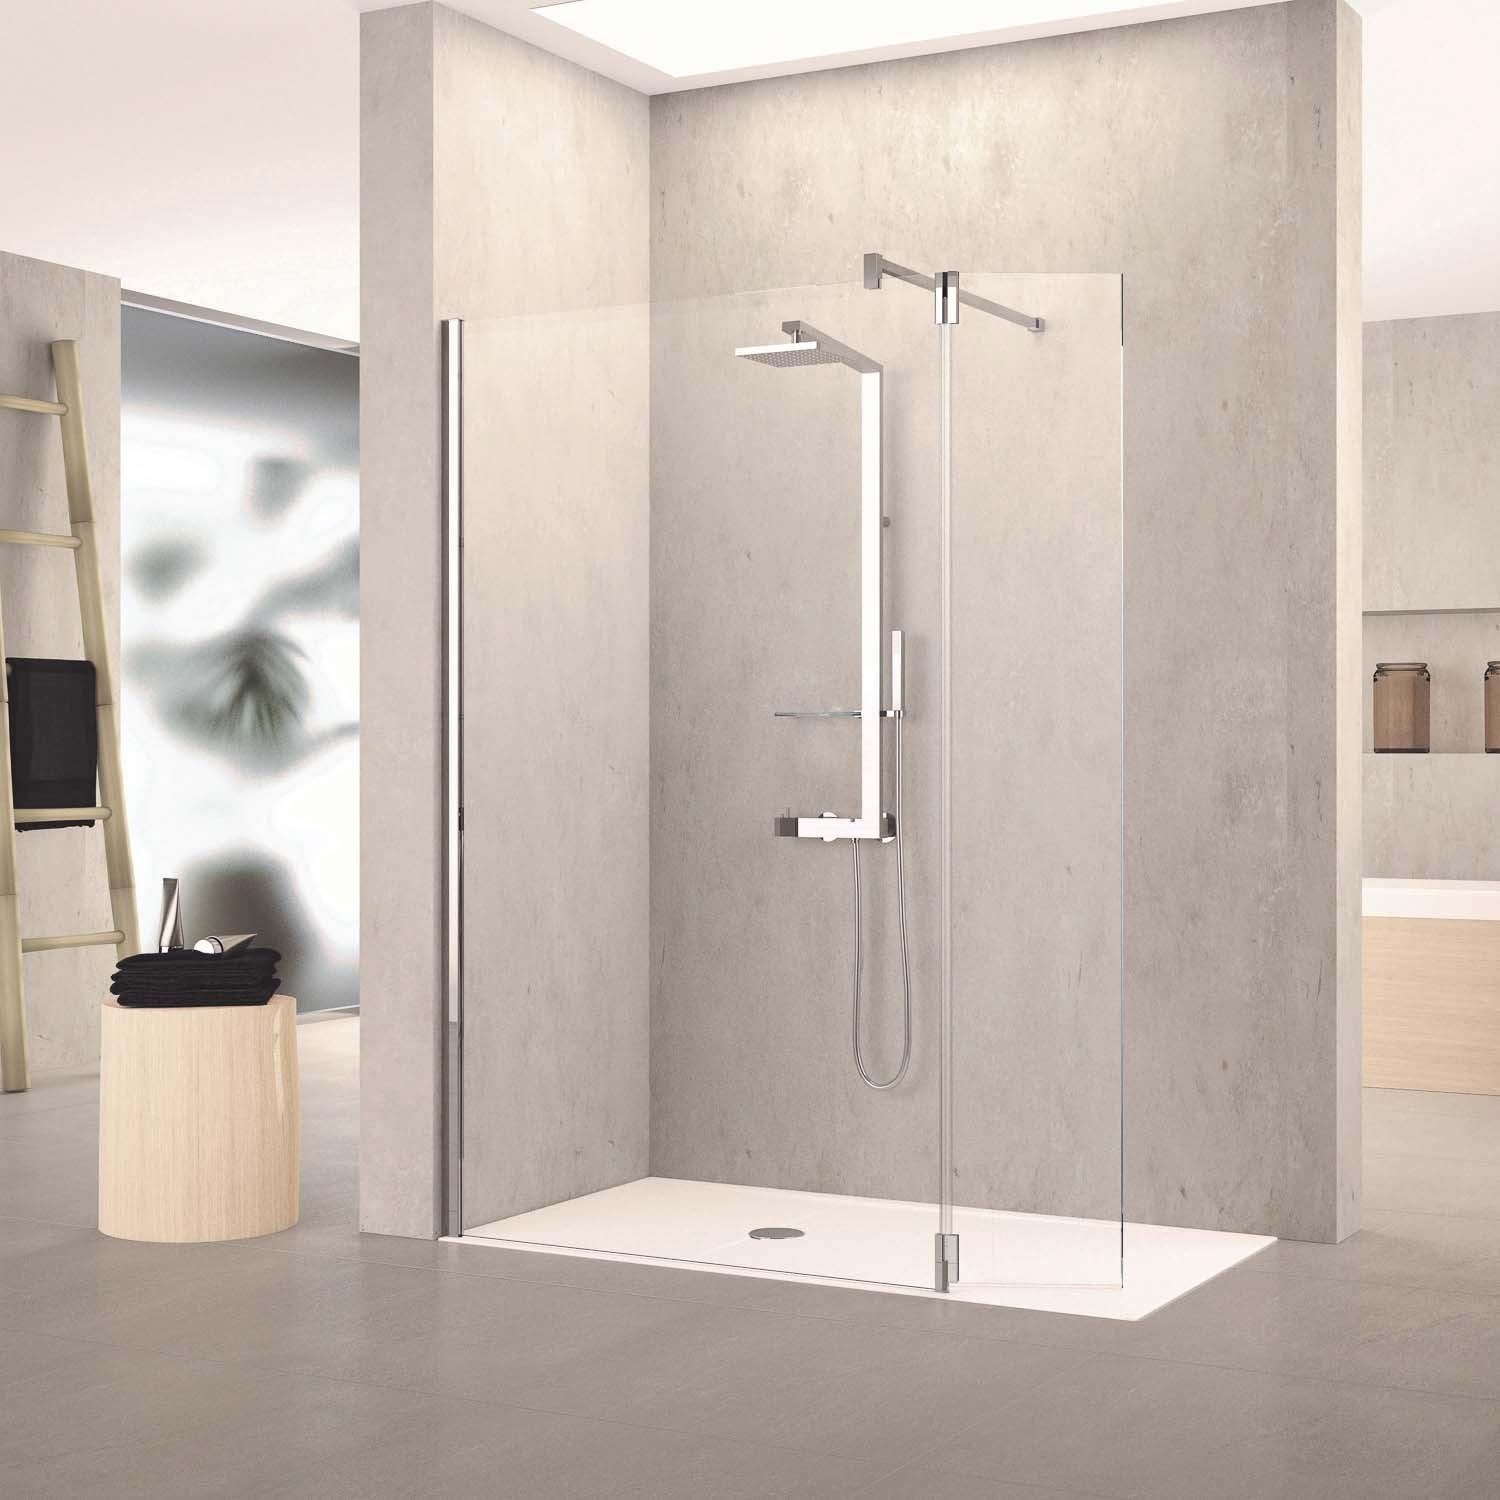 370mm Ergo Wet Room Deflector Panel Clear Glass with a chrome finish lifestyle image